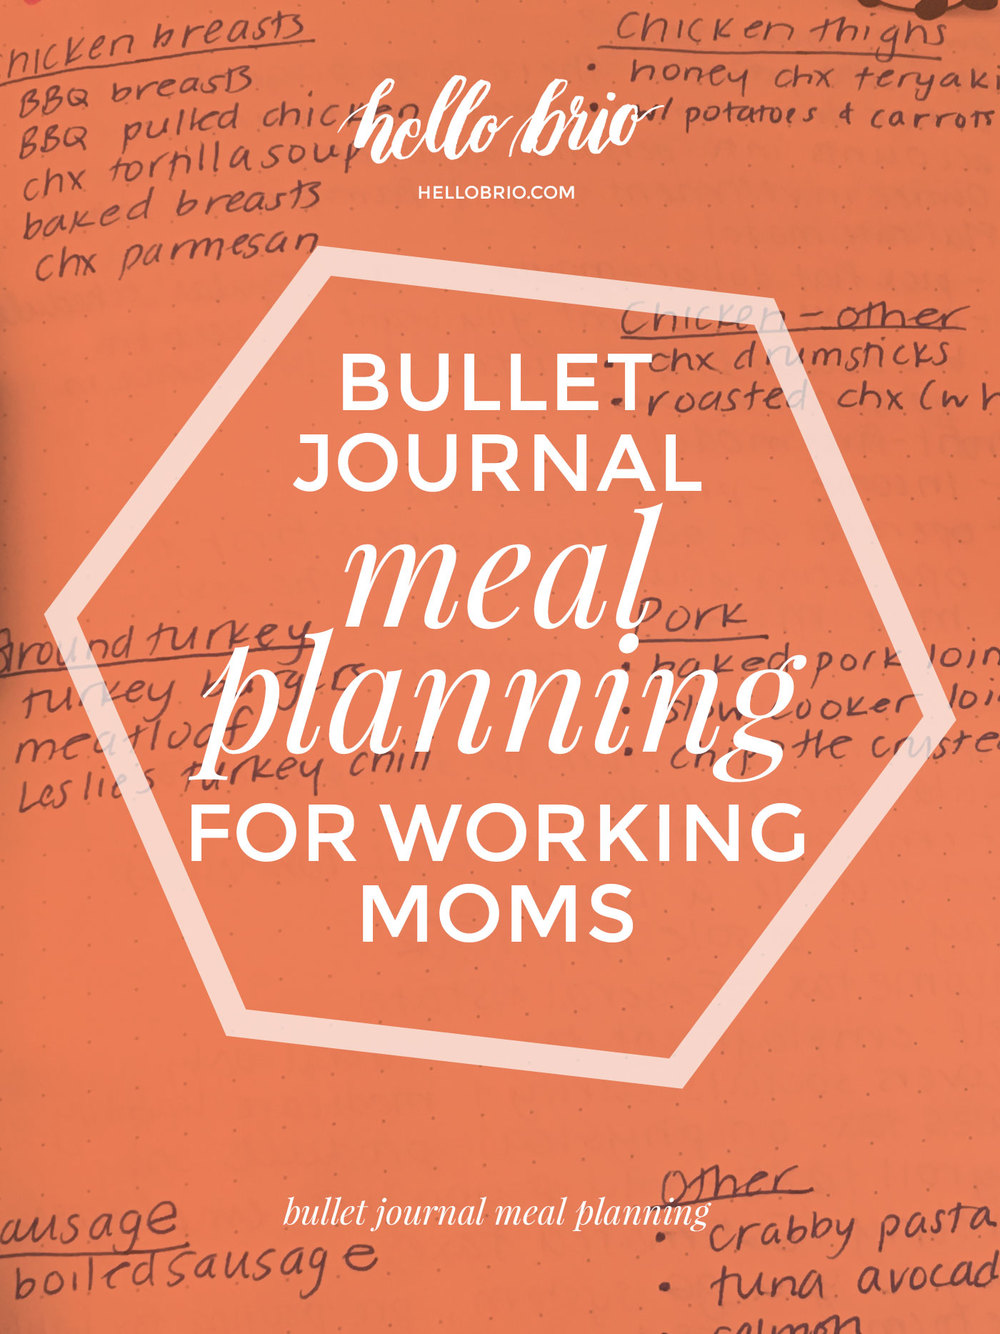 How to meal plan for the week using a bullet journal—for working or work-from-home moms